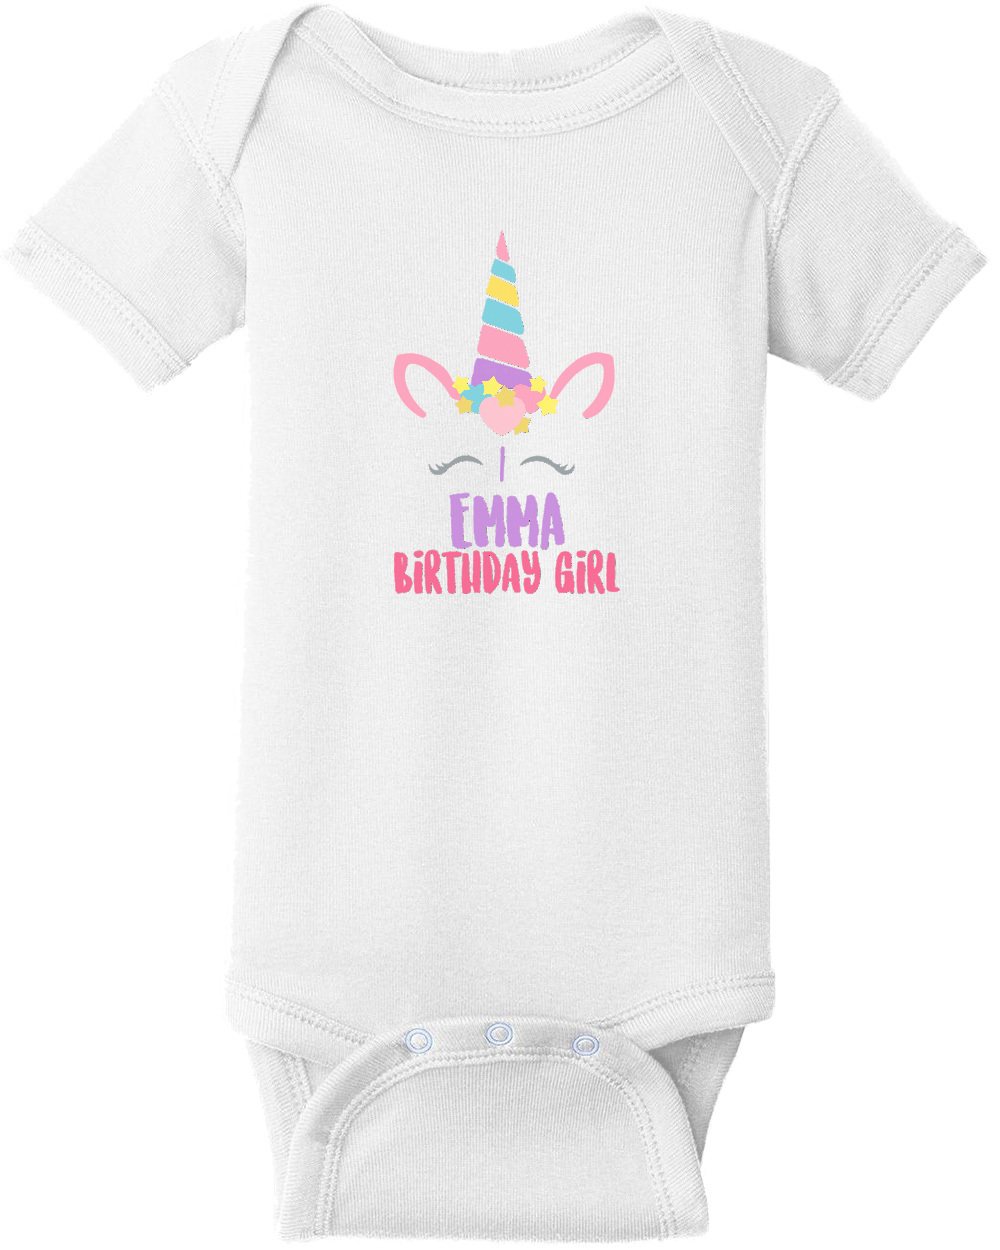 Unicorn Birthday Girl Shirt Girls Happy Custom T With Your Name And Age Personalized